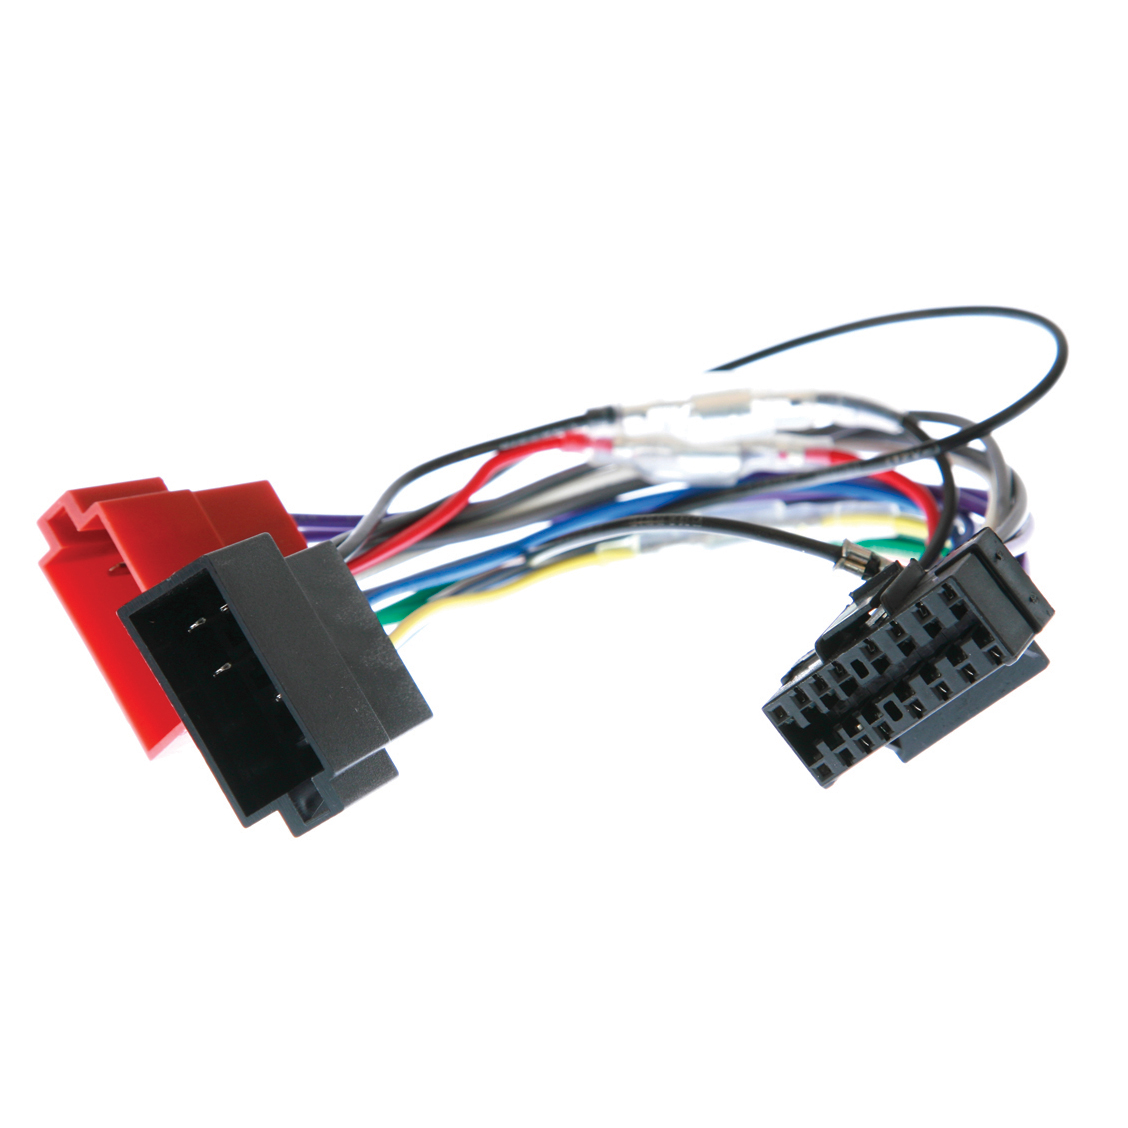 Secondary Harnesses Aerpro Clarion Car Radio Wiring Harness 14 Pin App8cla2 To Iso 16